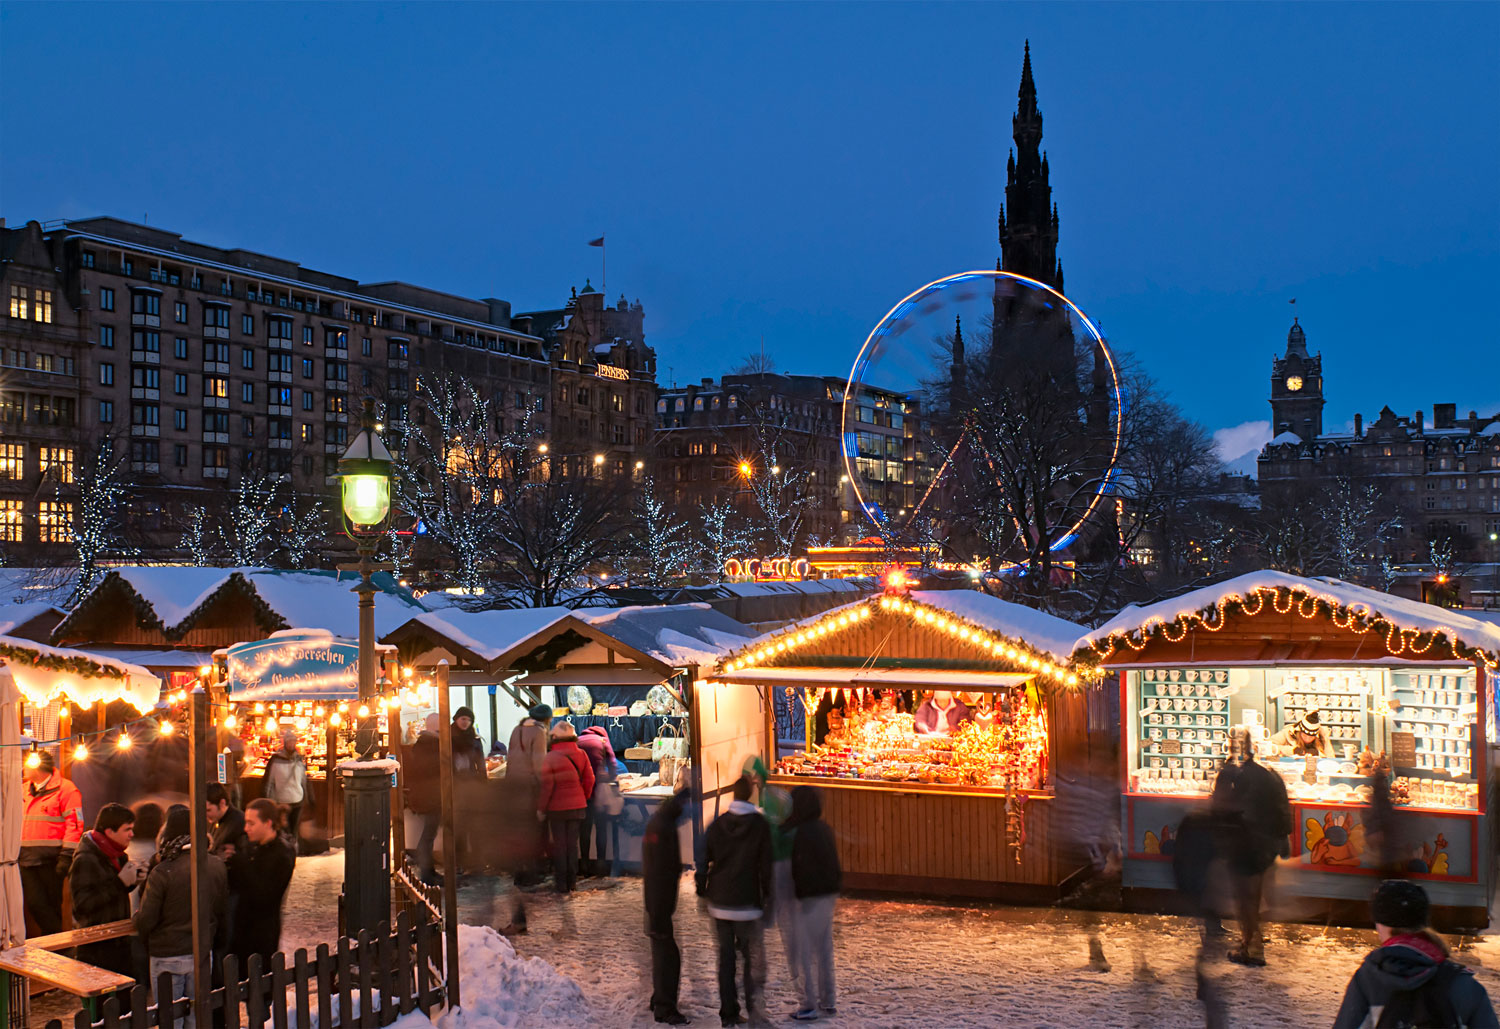 Photo of Princes Street Gardens during their Christmas market